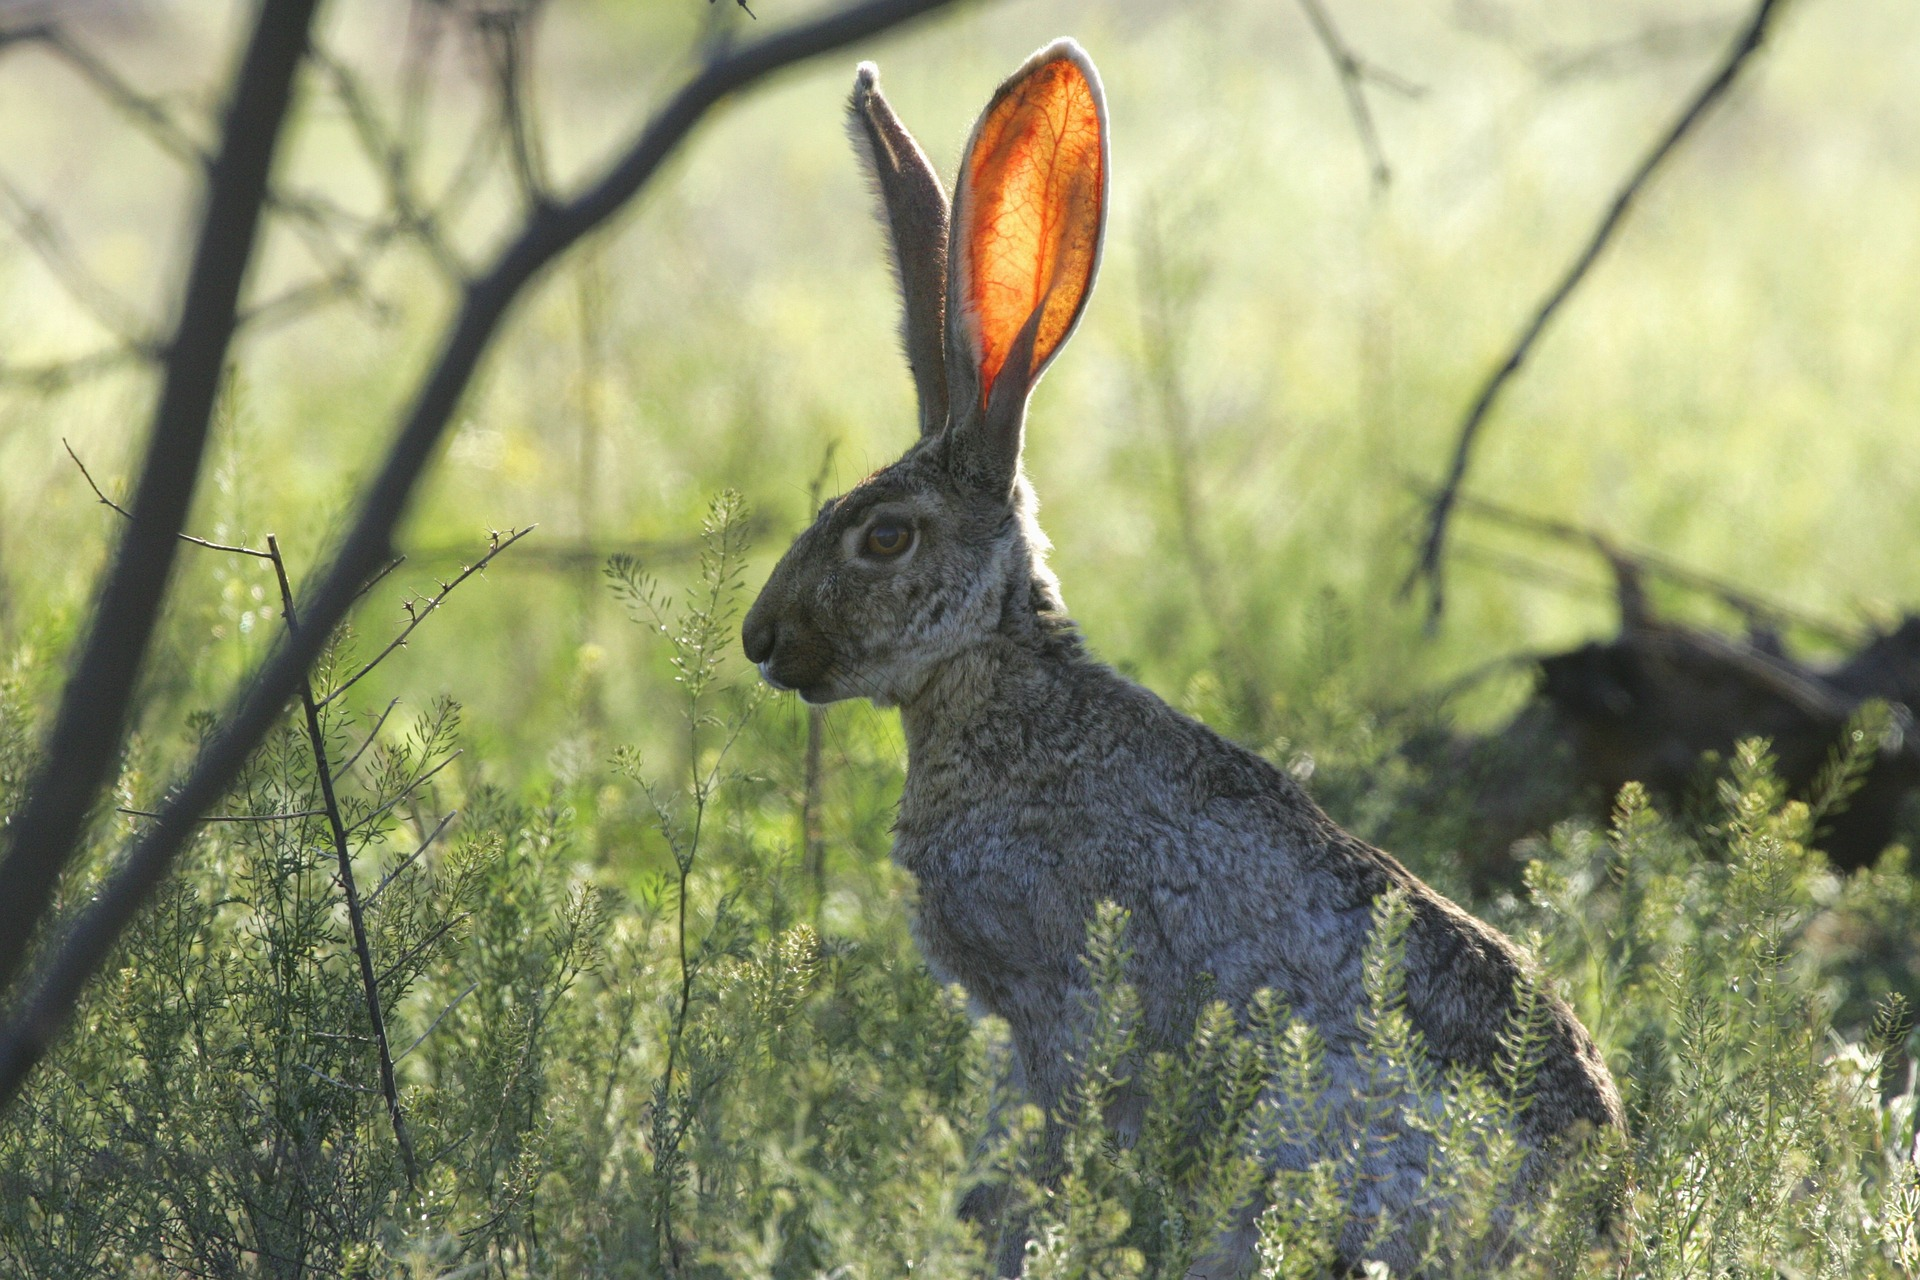 Rabbit with big ears in a position to hear something